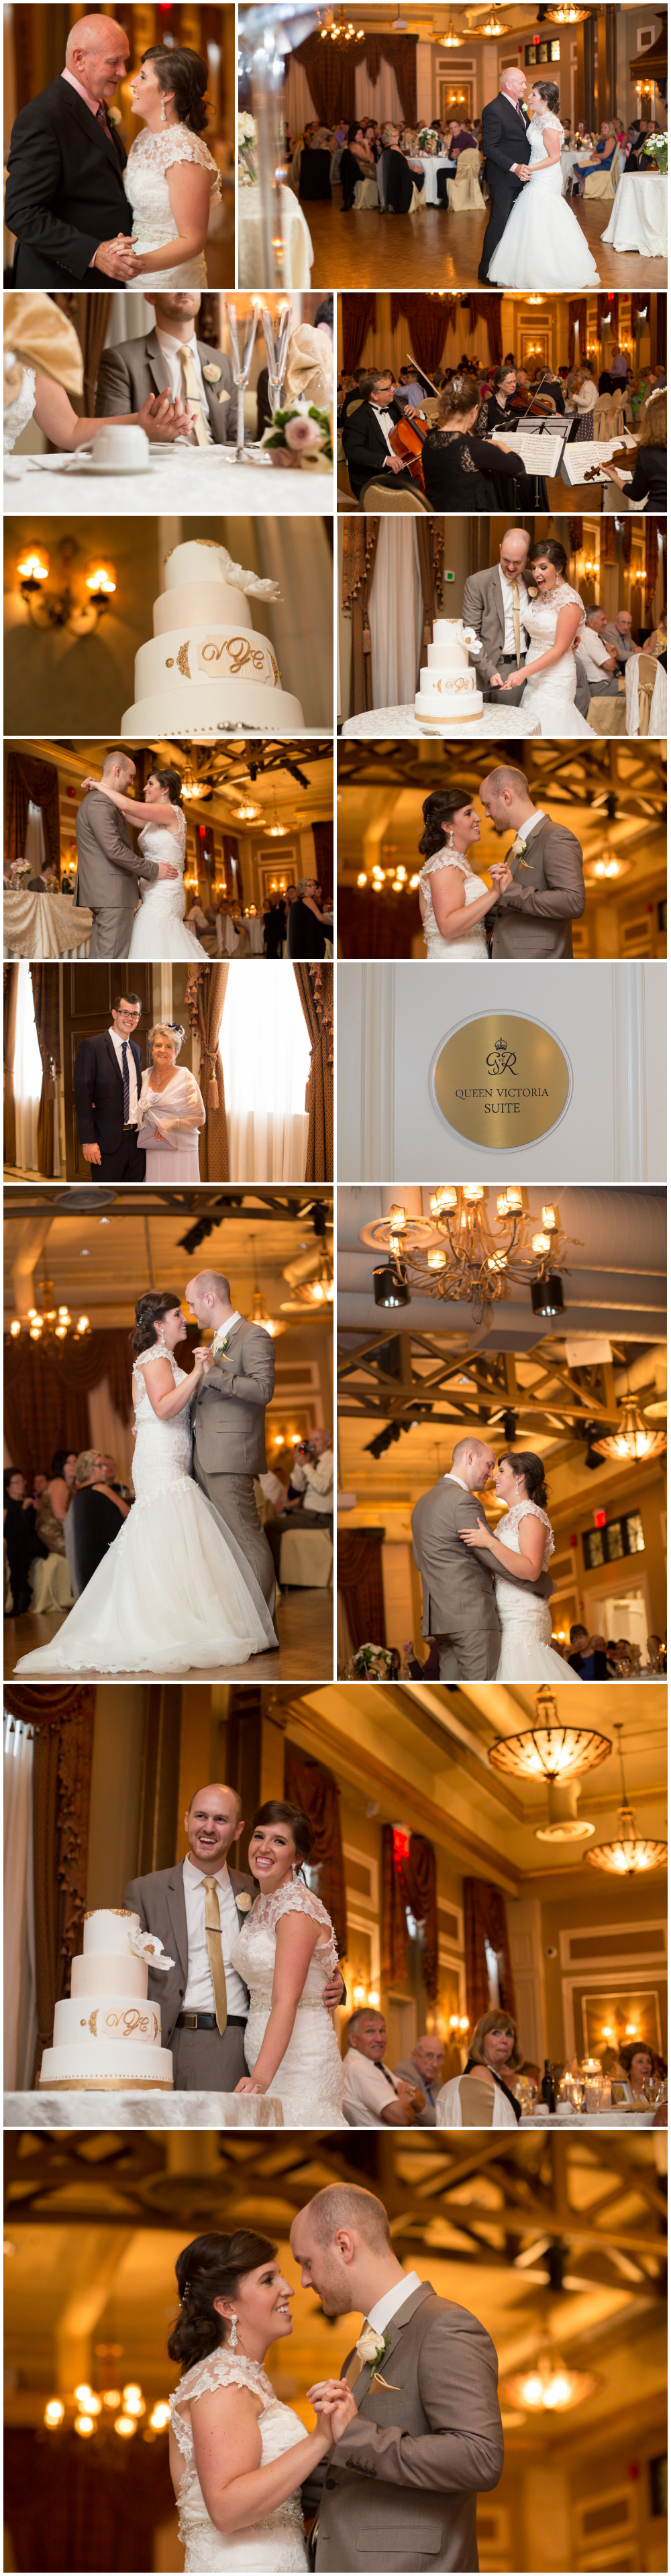 Liuna_Station_Hamilton_Wedding_Photo_JJMedia-14